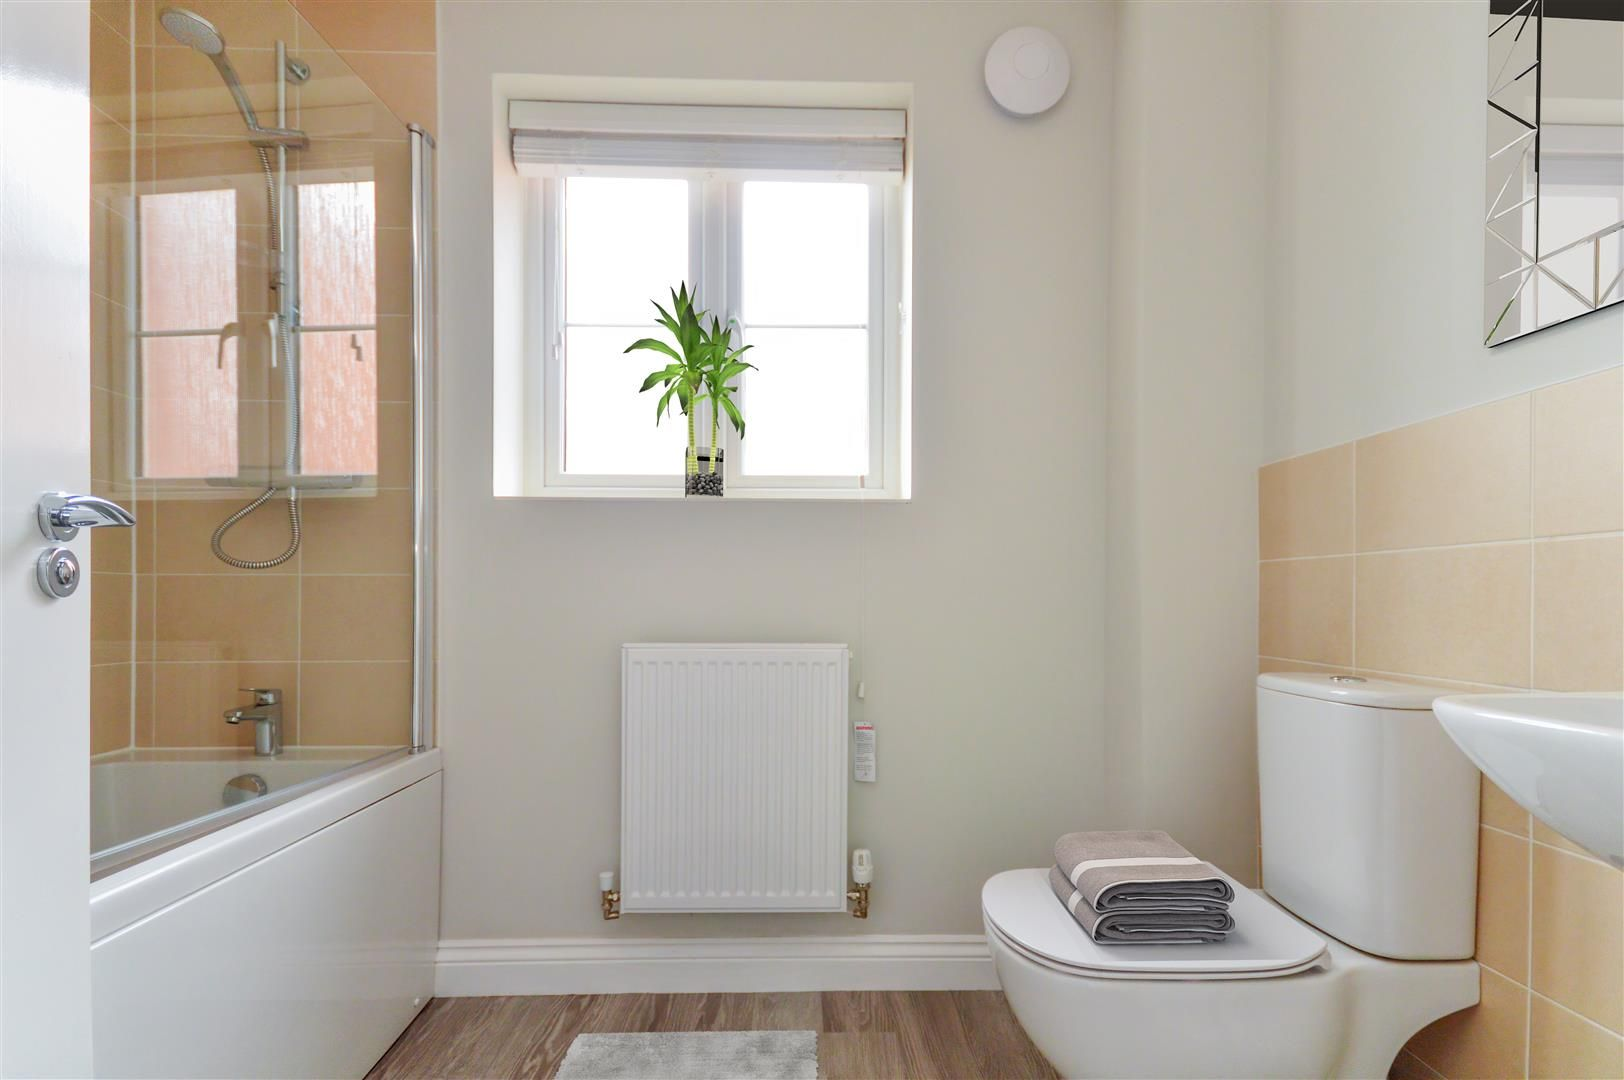 2 bed semi-detached for sale in Kingstone 6